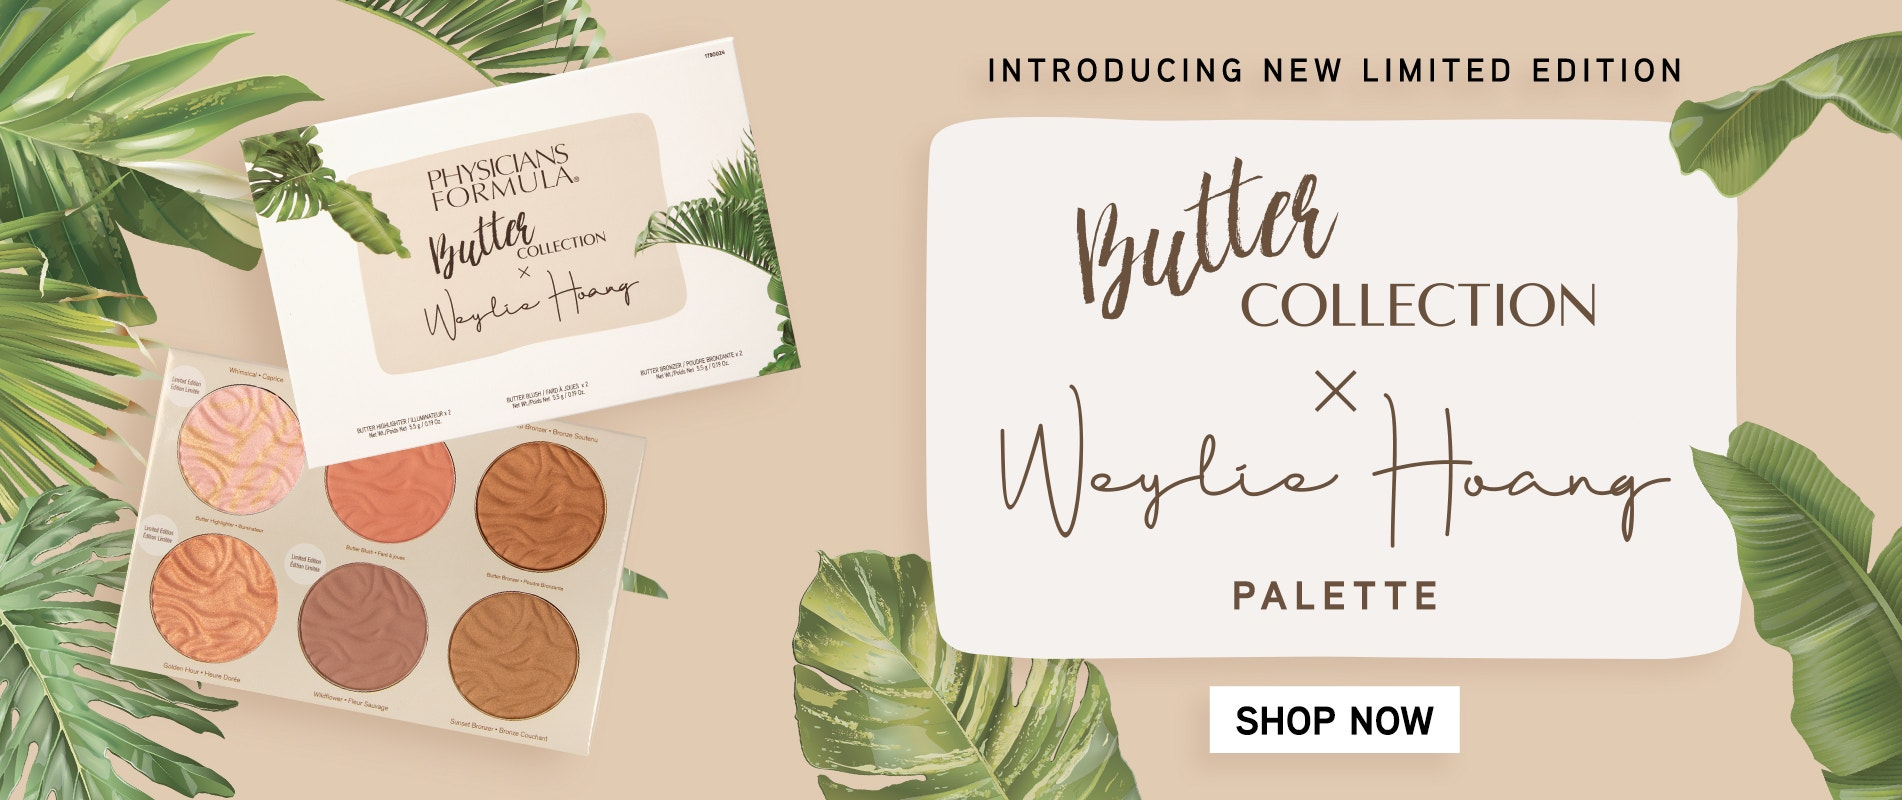 Physicians Formula | Introducing New Limited Edition Butter Collection X Weylie Hoand Palette | Open palette with colored background and leaves around boarder